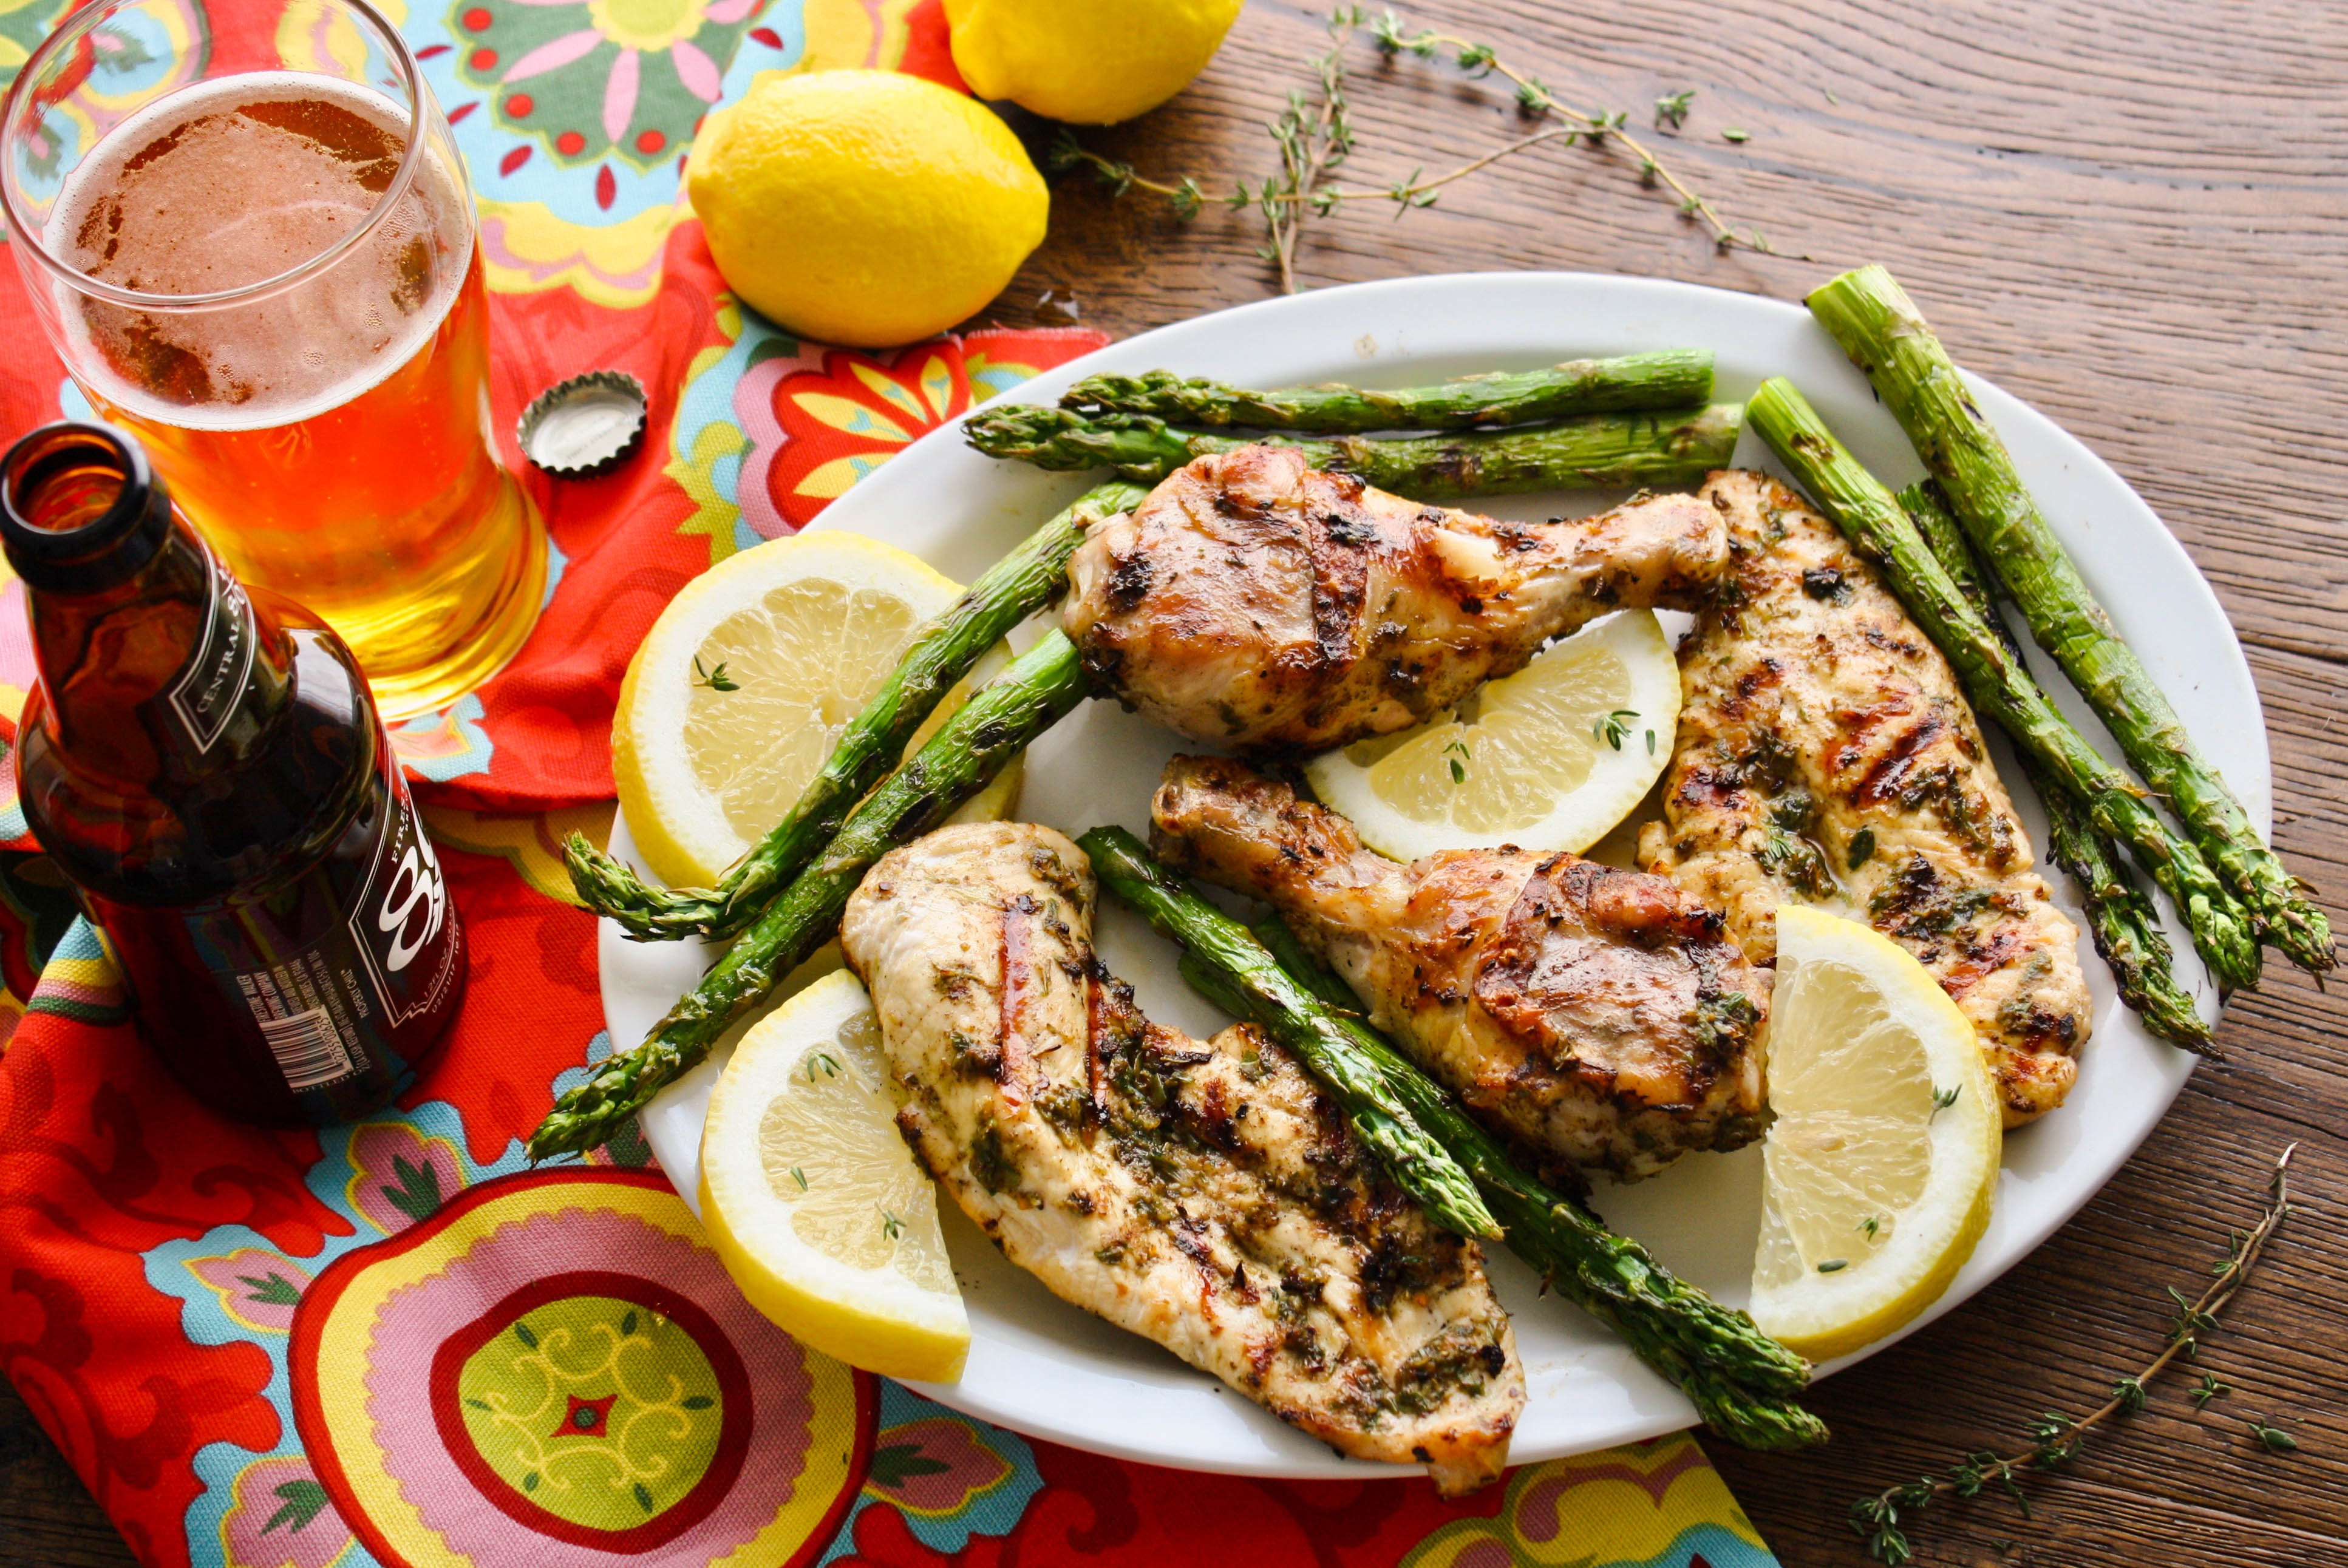 Jerk chicken is a fab dish for the family. There are so many great flavors included.